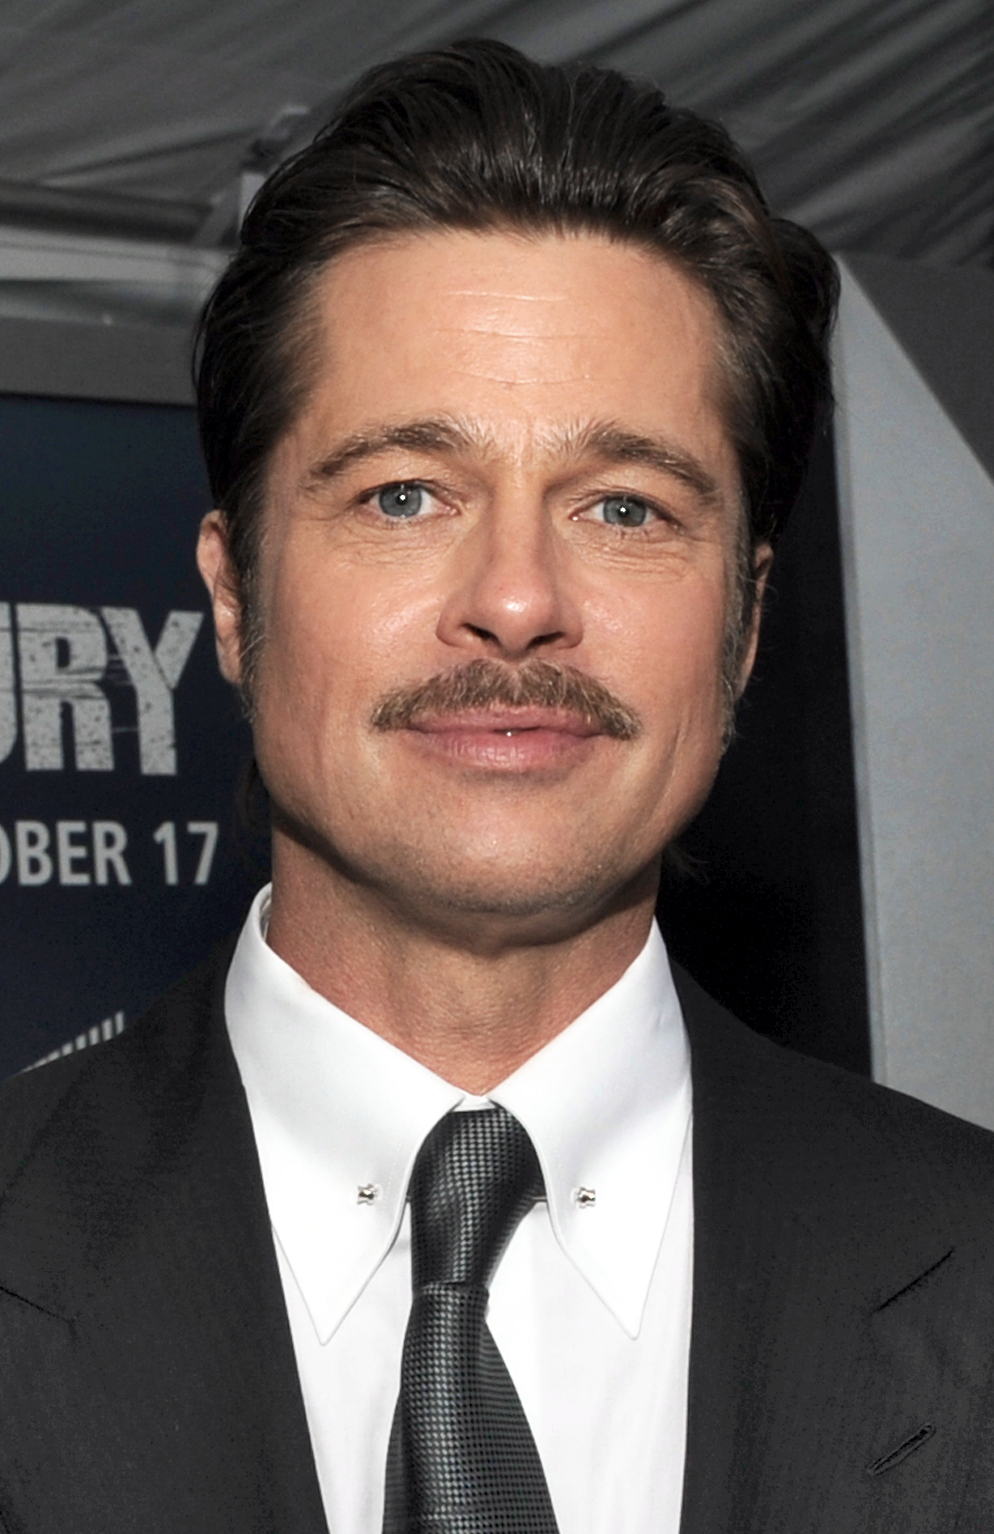 Brad Pitt Wikipedia - New official trailer fury starring brad pitt